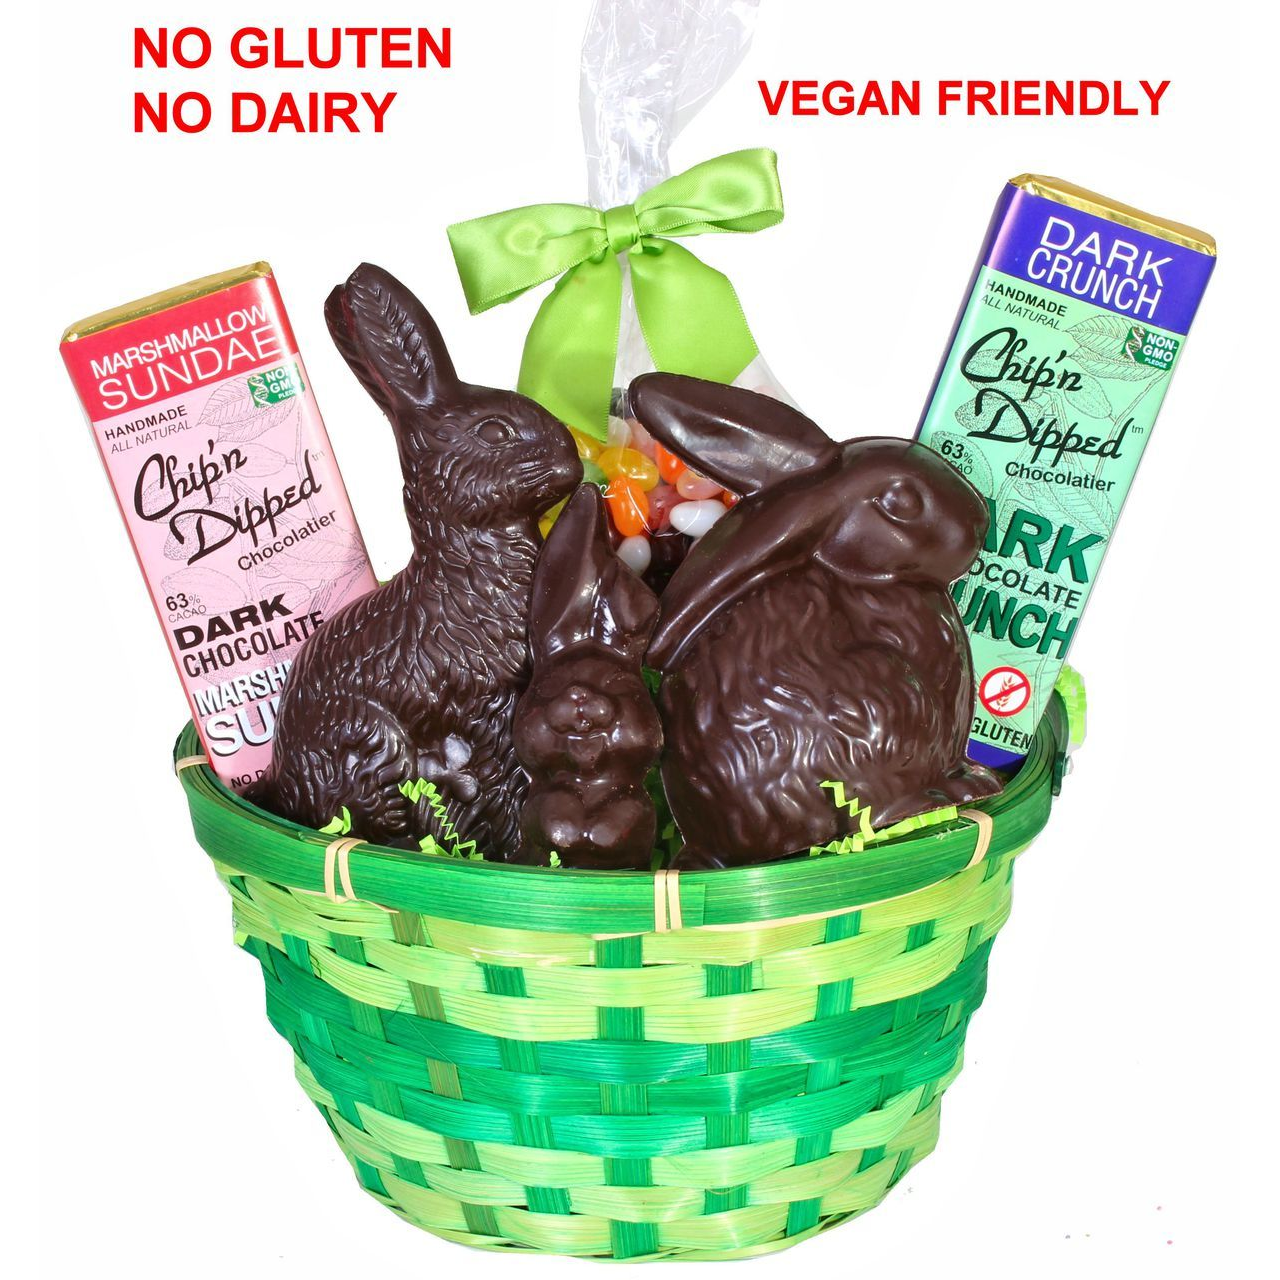 Vegan easter basket chipn dipped chocolatier vegan easter basket negle Image collections